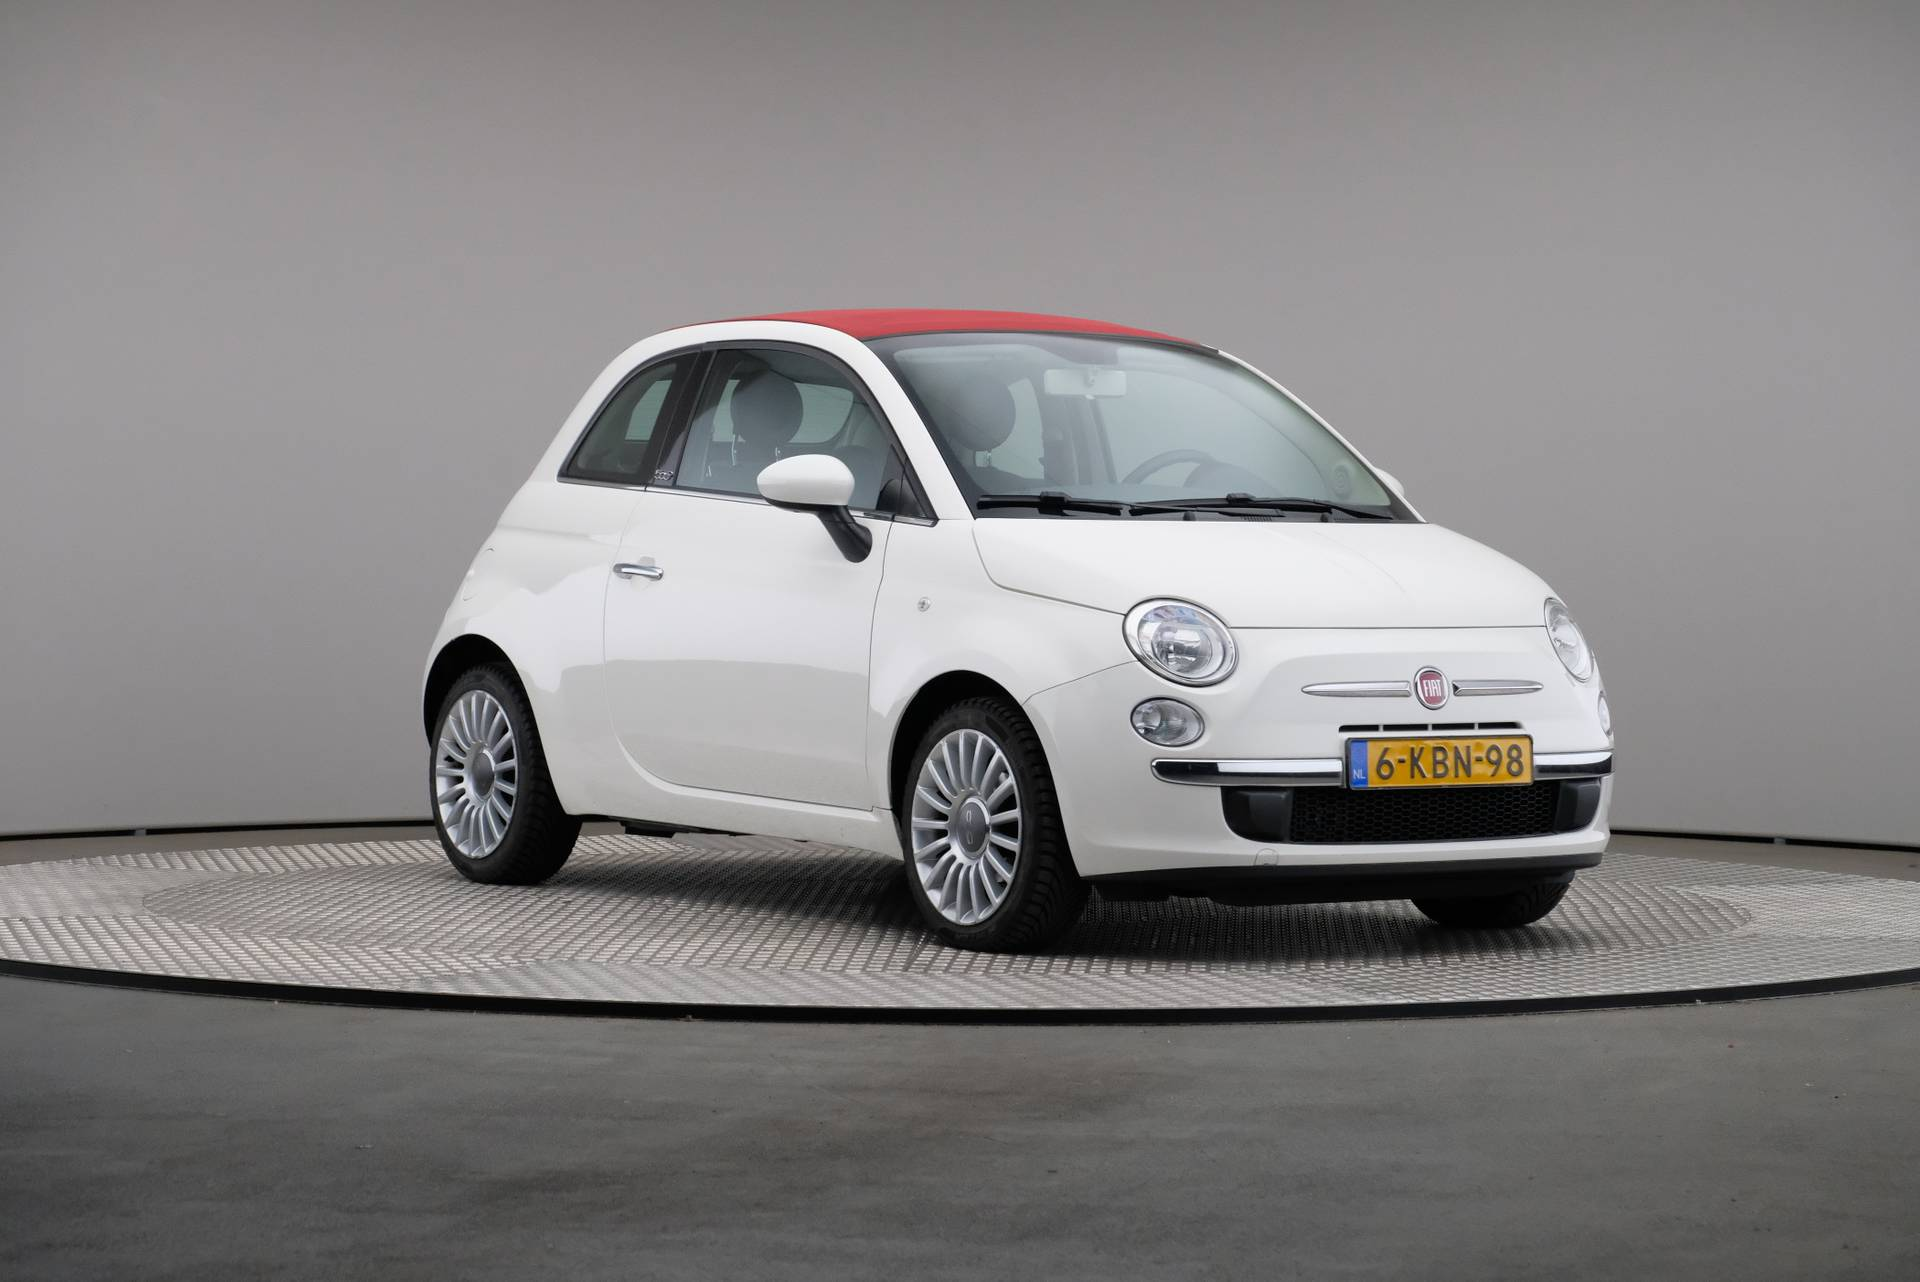 Fiat 500C TwinAir Turbo 85 Lounge, Airconditioning, 360-image29